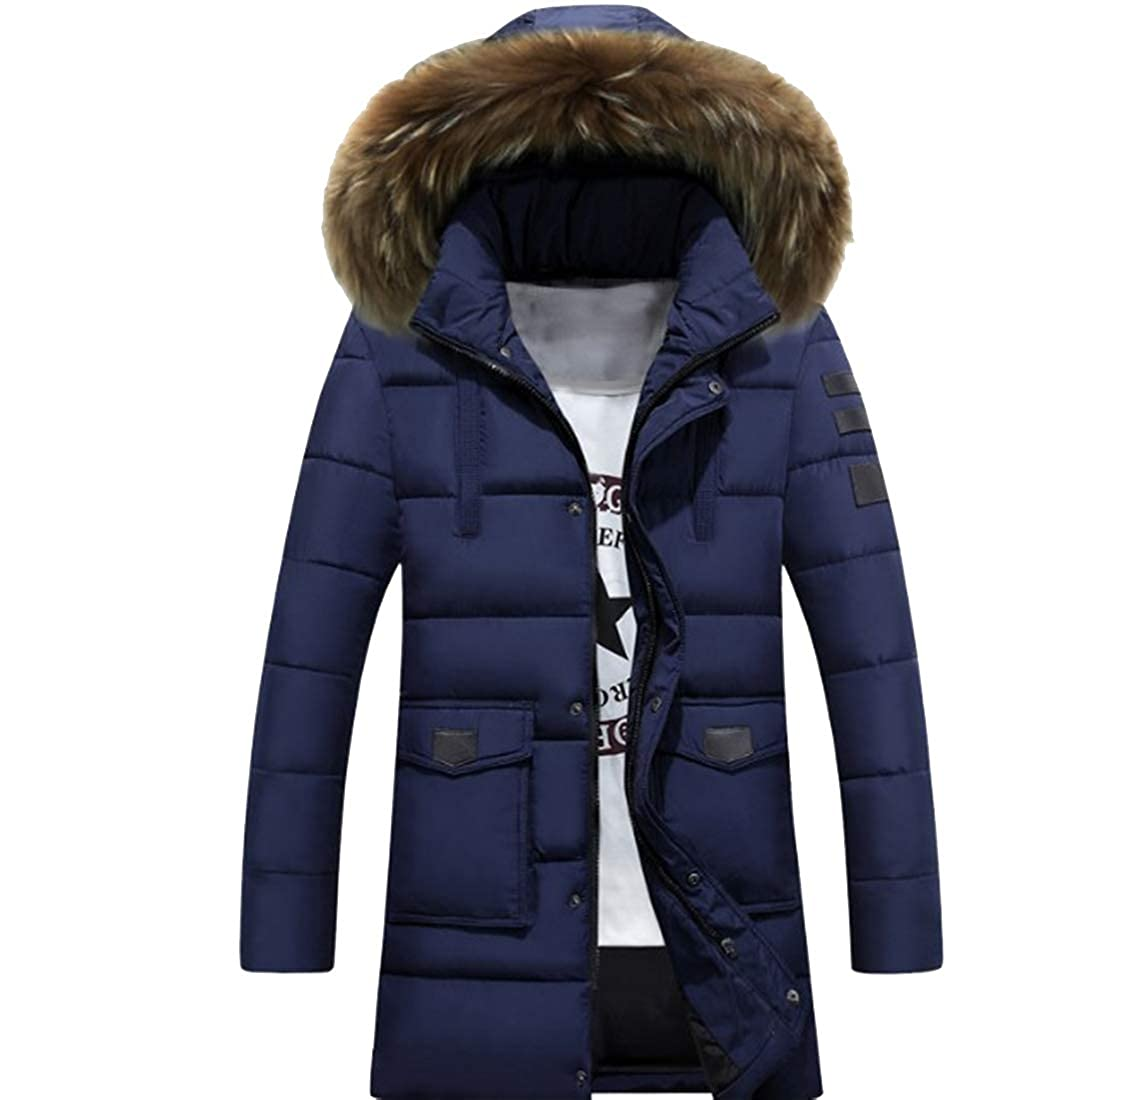 Jotebriyo Mens Faux Fur Hooded Thermal Mid Length Plus Size Down Quilted Puffer Jacket Coat Outerwear